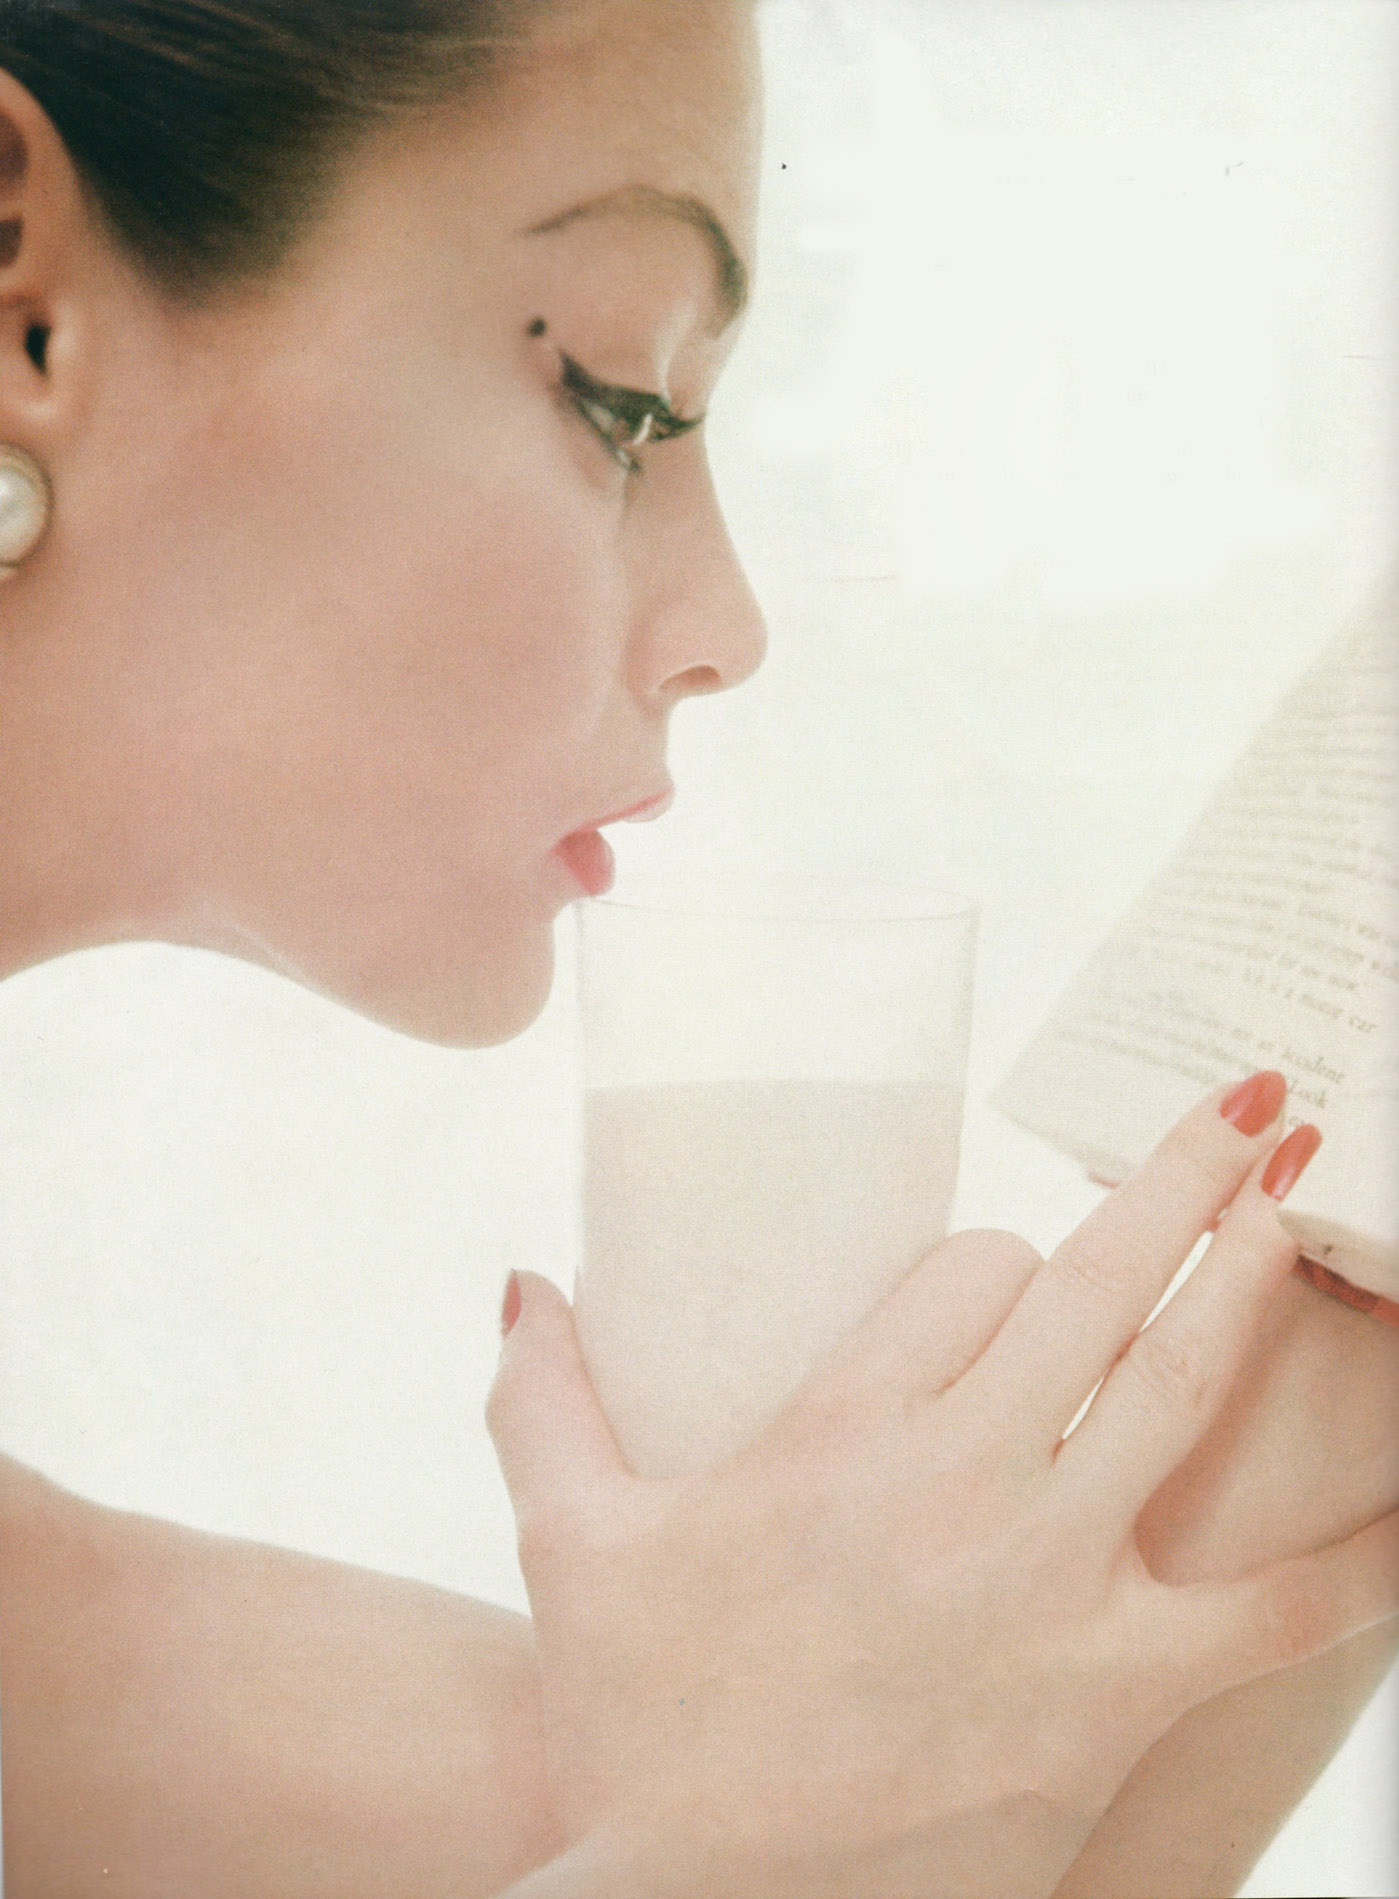 Jean Patchett drinking a glass of milk